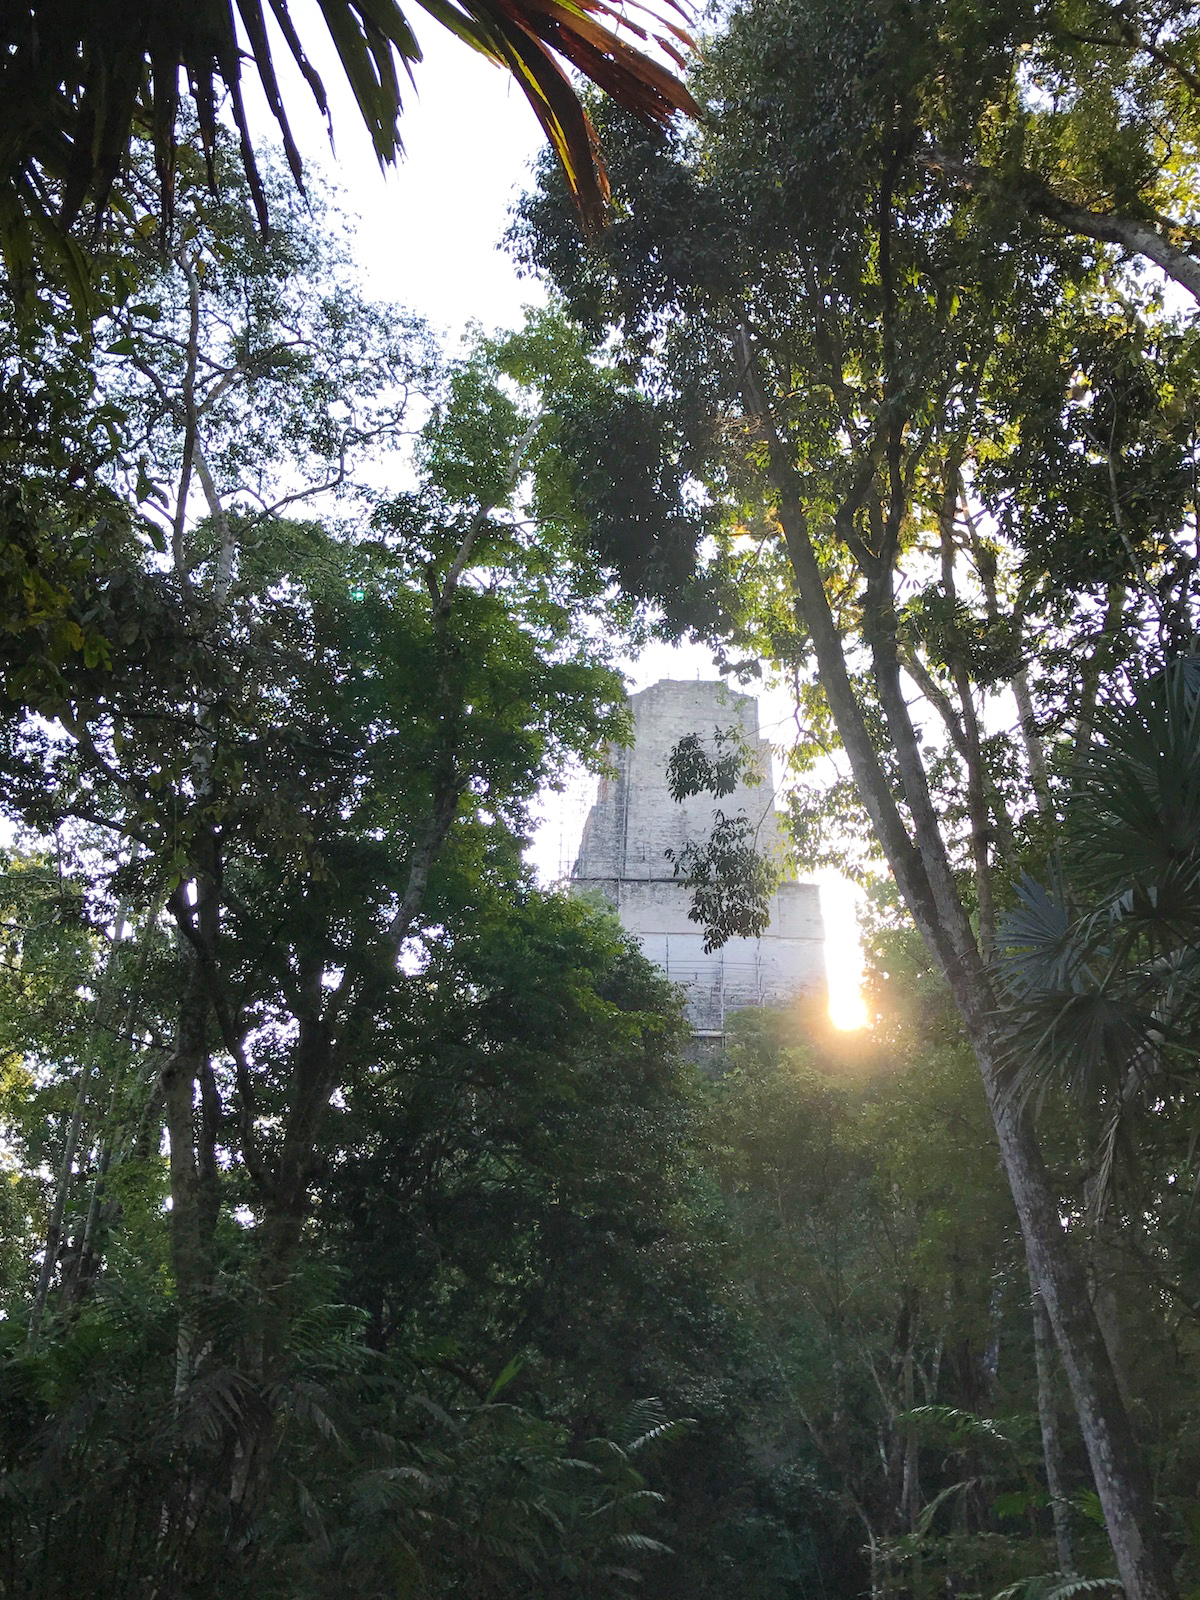 temple through the trees in Tikal National Park, Guatemala